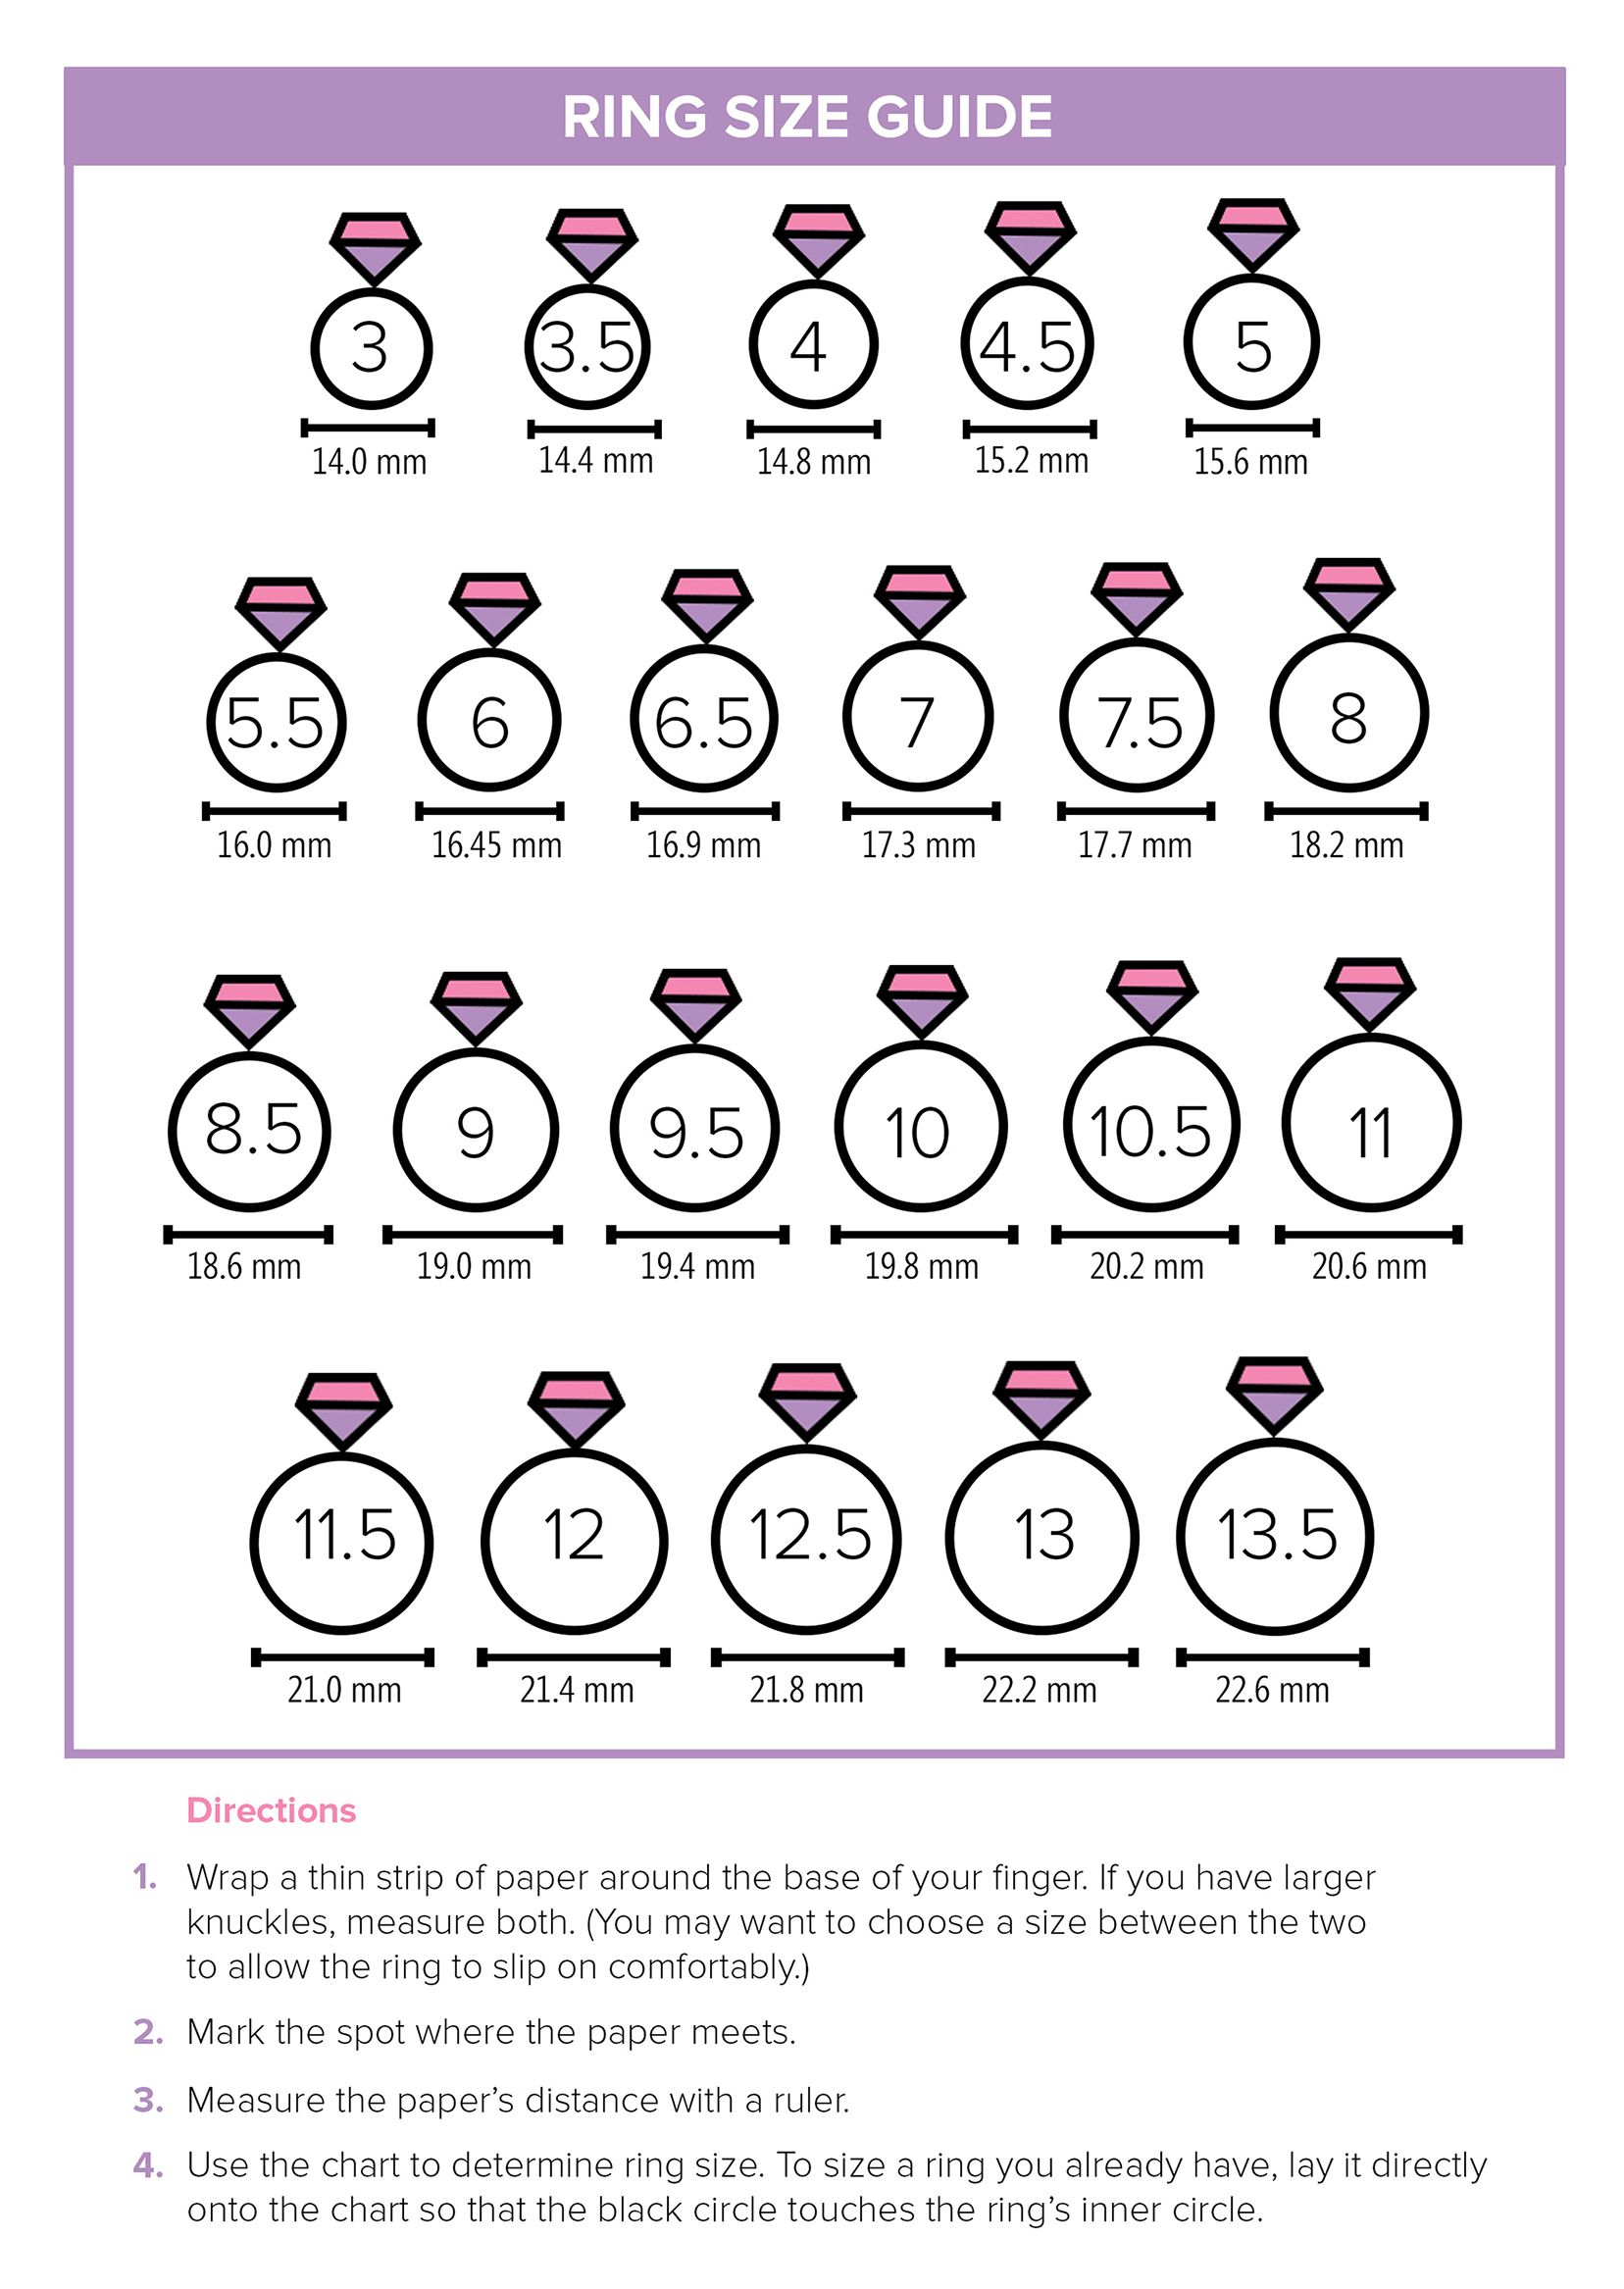 How To Find Your Ring Size At Home Using This Handy Chart